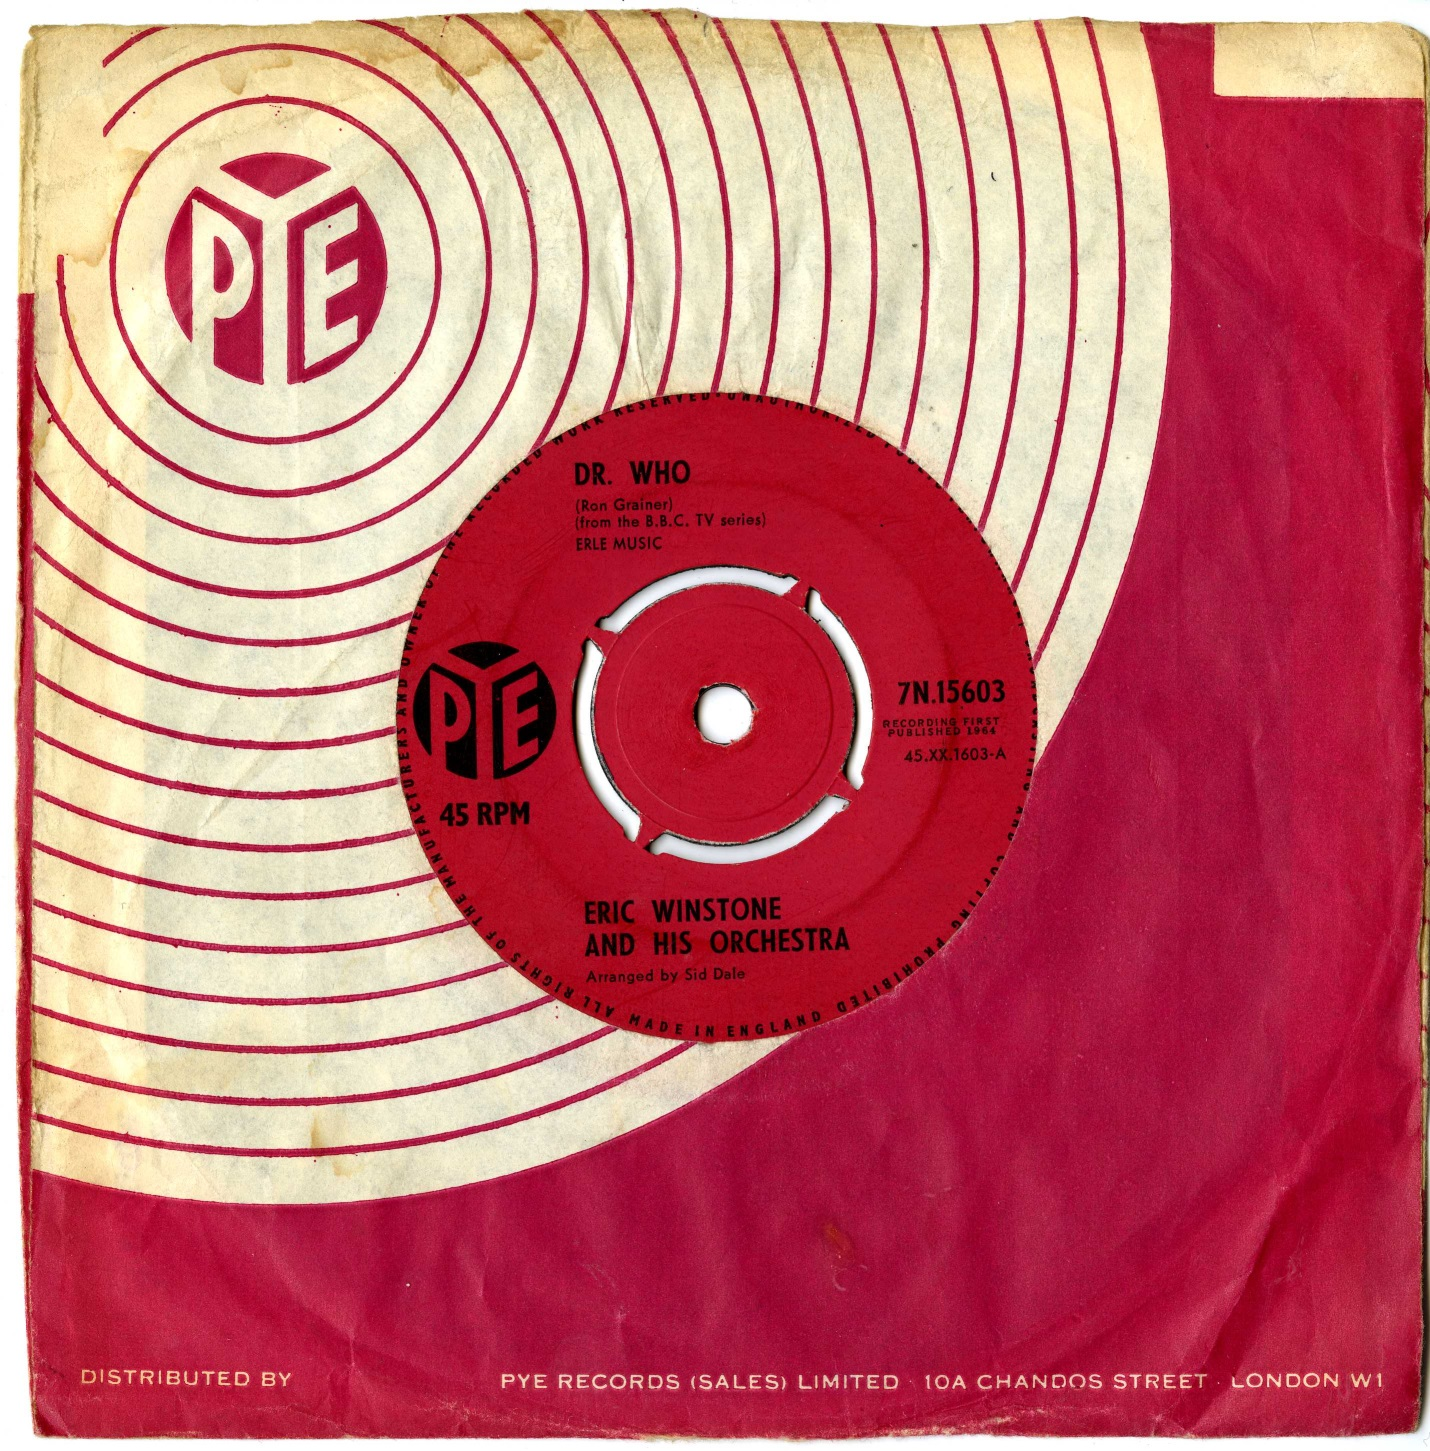 Dr. Who - Eric Winstone and his Orchestra, Pye 45-RPM Single